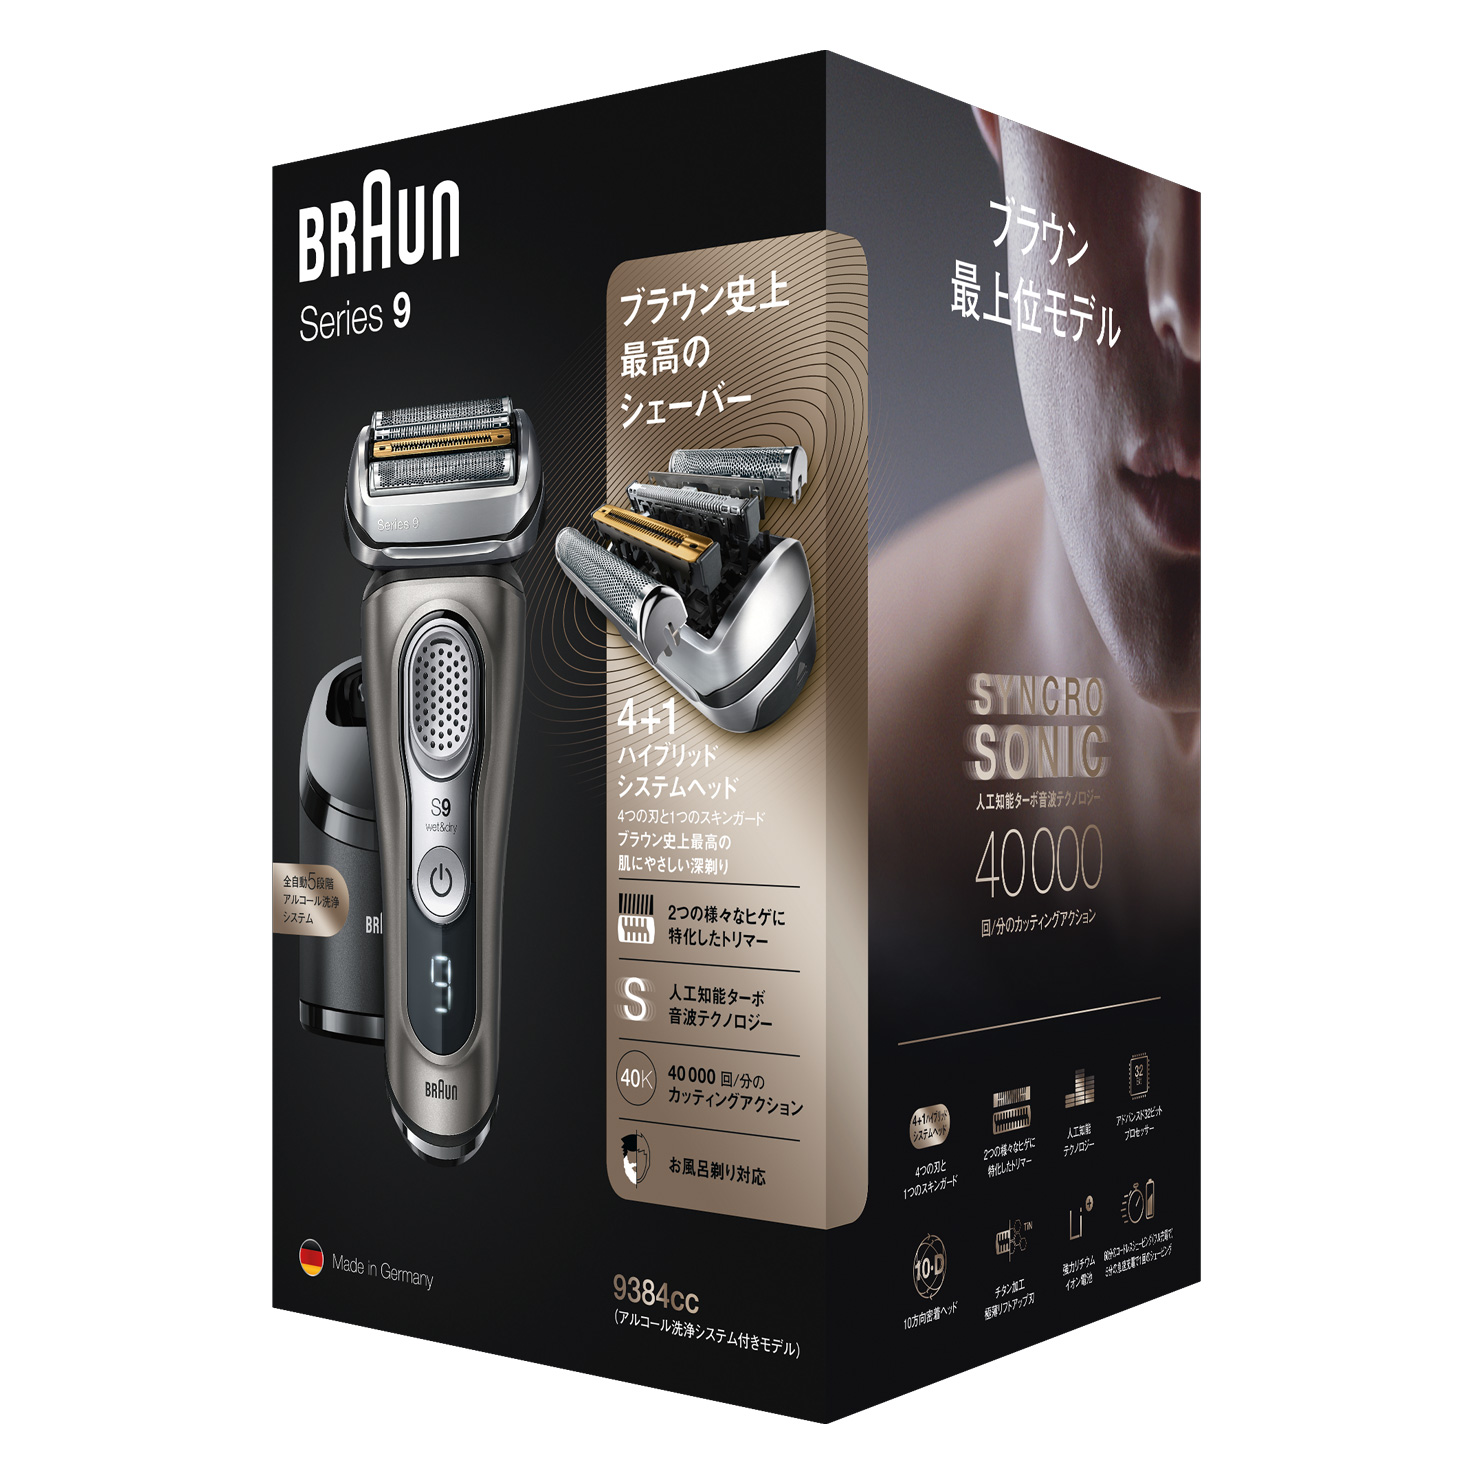 Series 9 9384cc shaver - Packaging